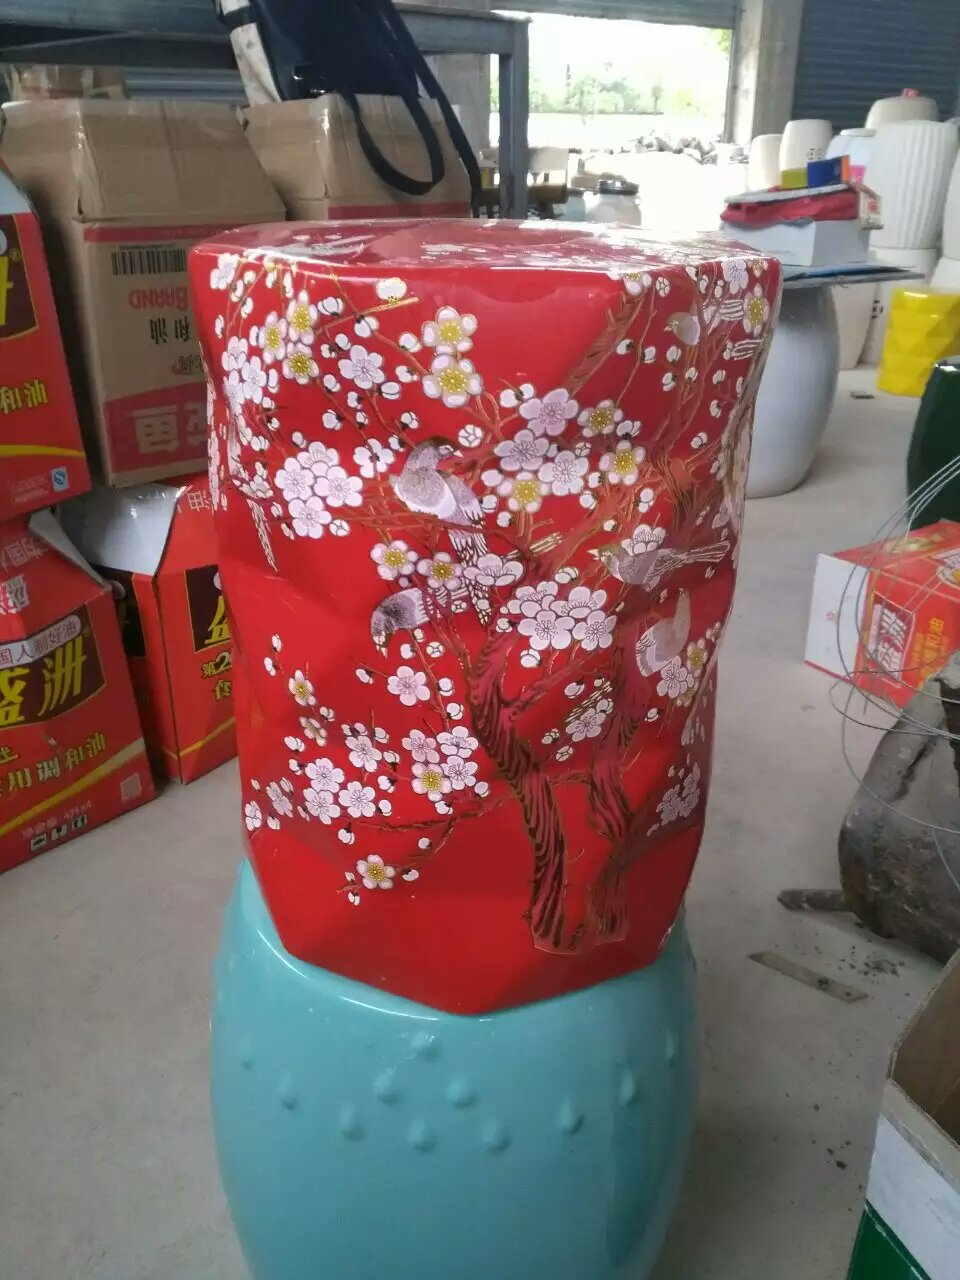 Outstanding Us 242 1 10 Off Red Color Jindezhen Dressing Ceramic Garden Stool Chinese Ceramic Drum Stool Bathroom Porcelain Stool Red In Stools Ottomans From Unemploymentrelief Wooden Chair Designs For Living Room Unemploymentrelieforg